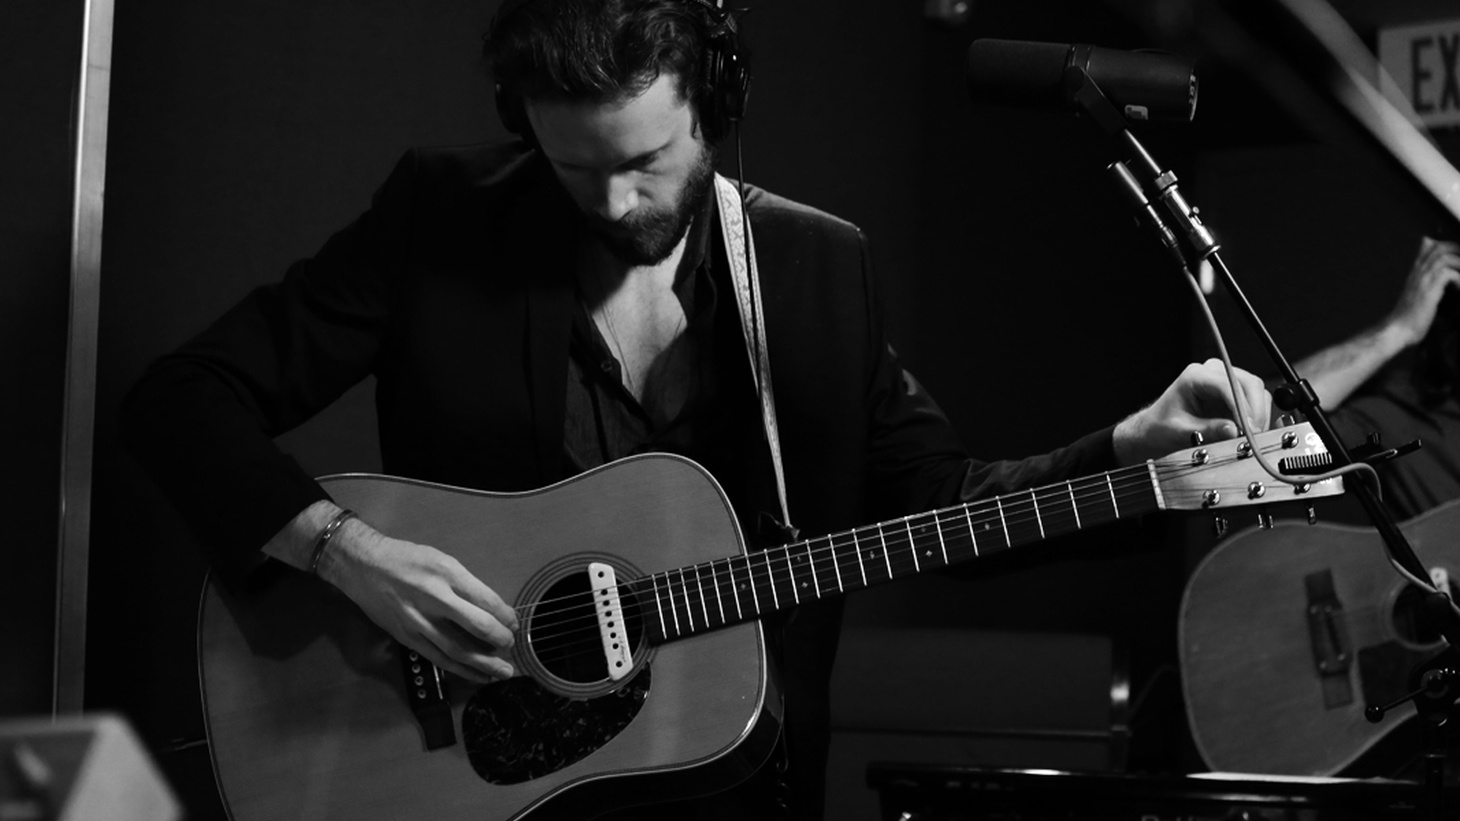 Father John Misty is an intriguing character created by former Fleet Foxes drummer J. Tillman. He took the music world by storm with his 2015 debut and his sophomore album,I Love You, Honeybear, explores married love.